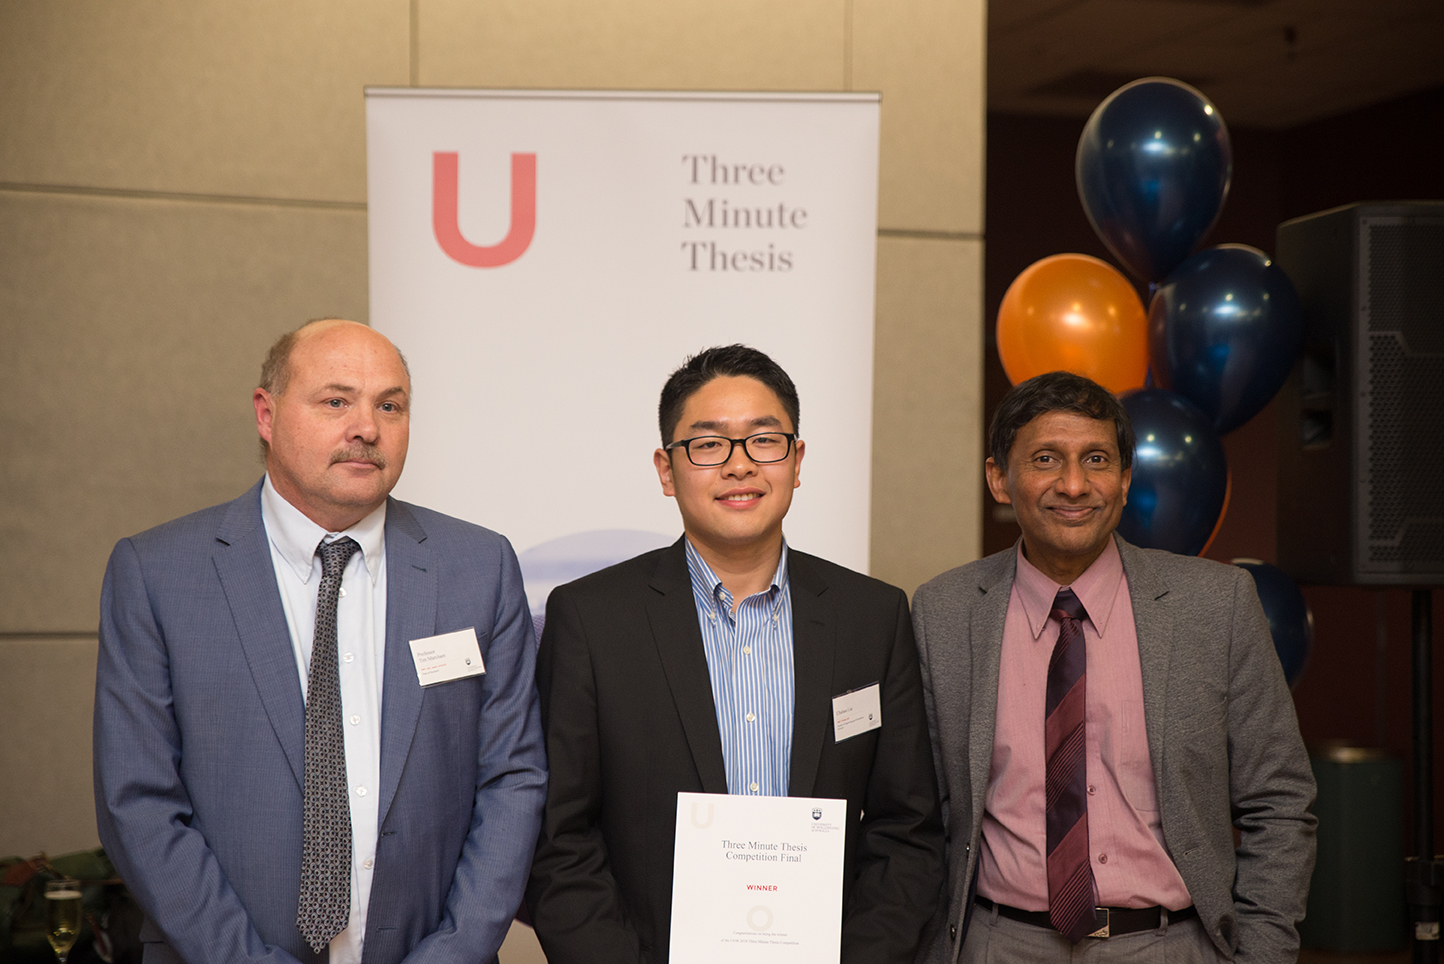 uow 3 minute thesis